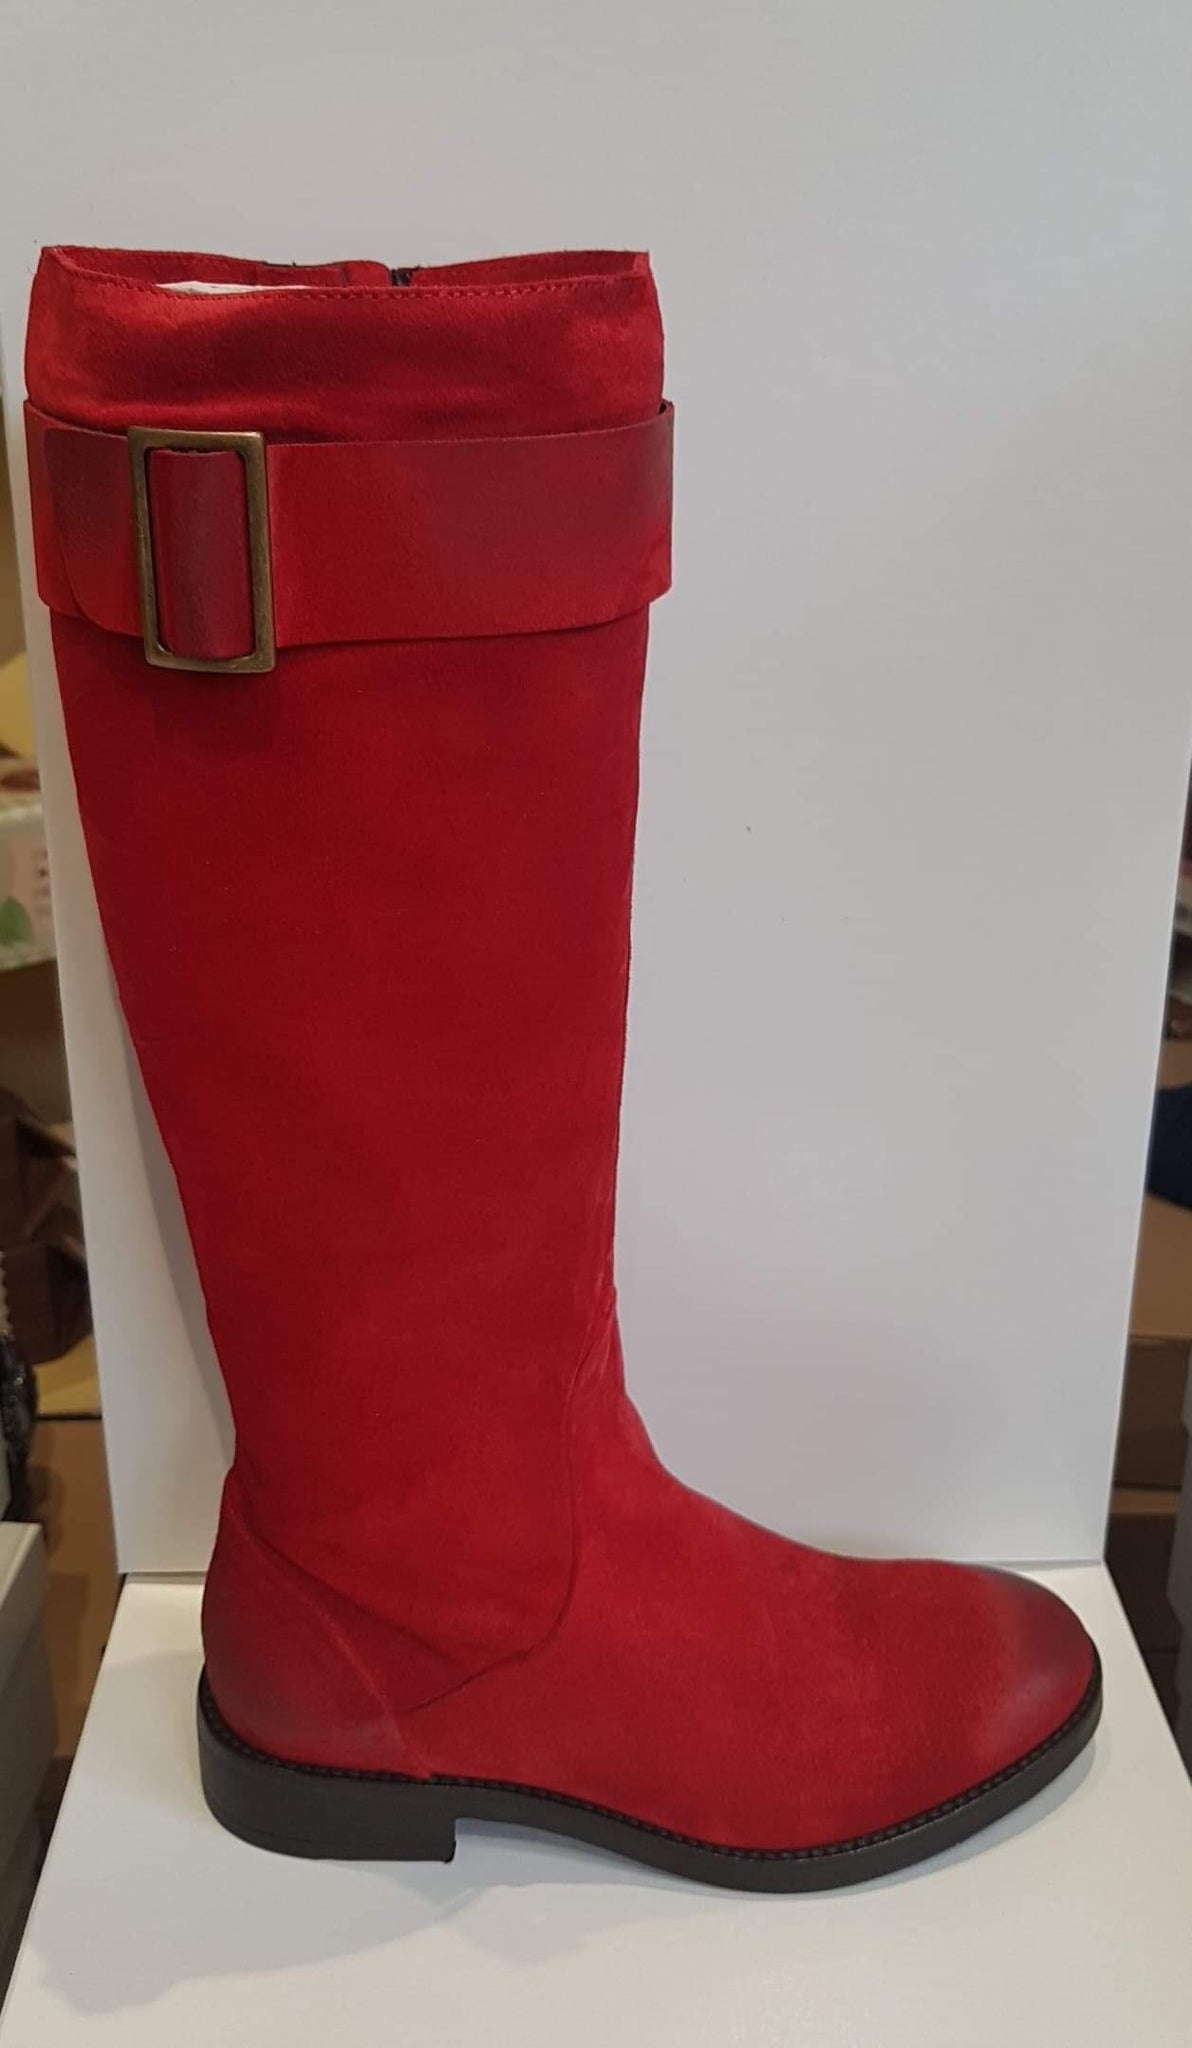 Alisa Bianchini Red boots made in italy